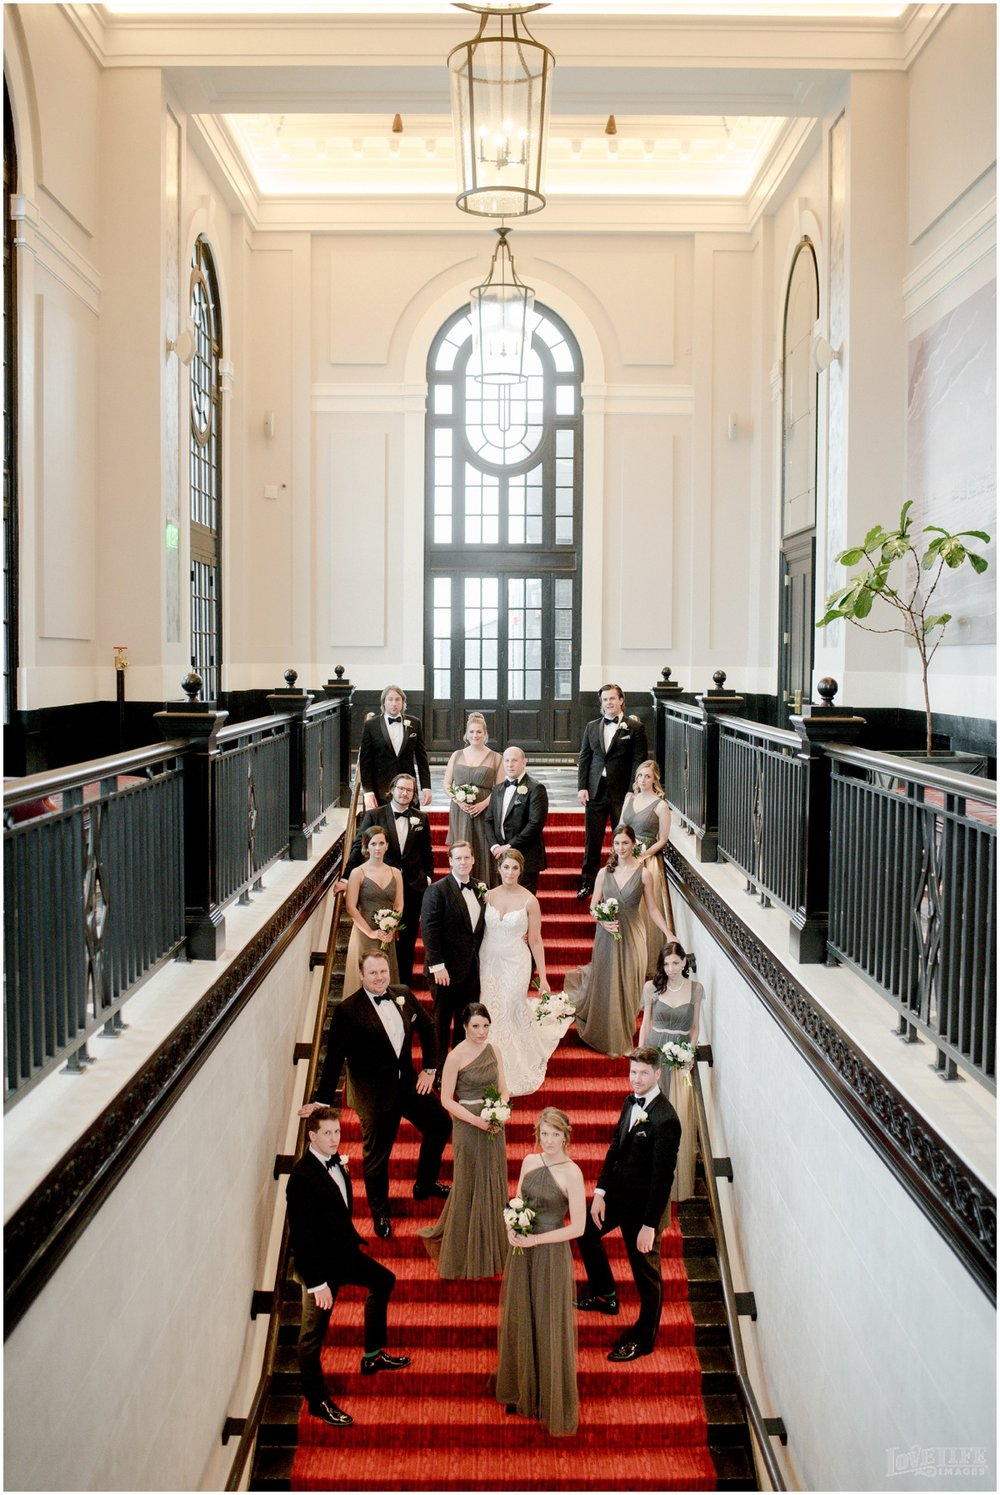 Peabody Library Baltimore Glam Wedding Sagamore Pendry staircase wedding party.jpg